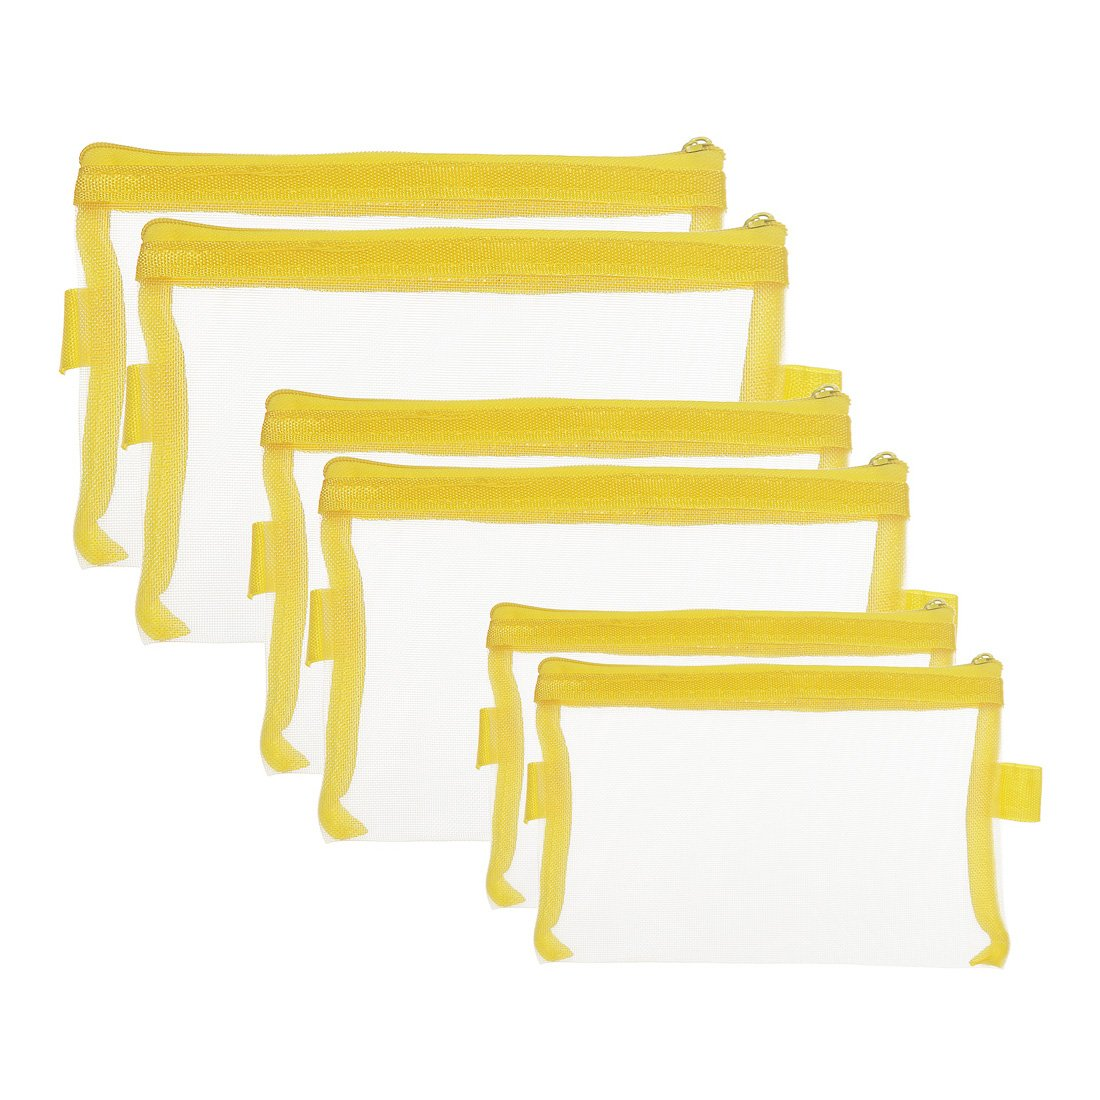 HYFAN Zipper File Envelope Folder Bag Breathable Transparent Mesh Document Pocket A4 A5 A6 Paper Pouch Storage for Office School Supplies ( PVC, Yellow, 3 sizes, Pack of 6 )